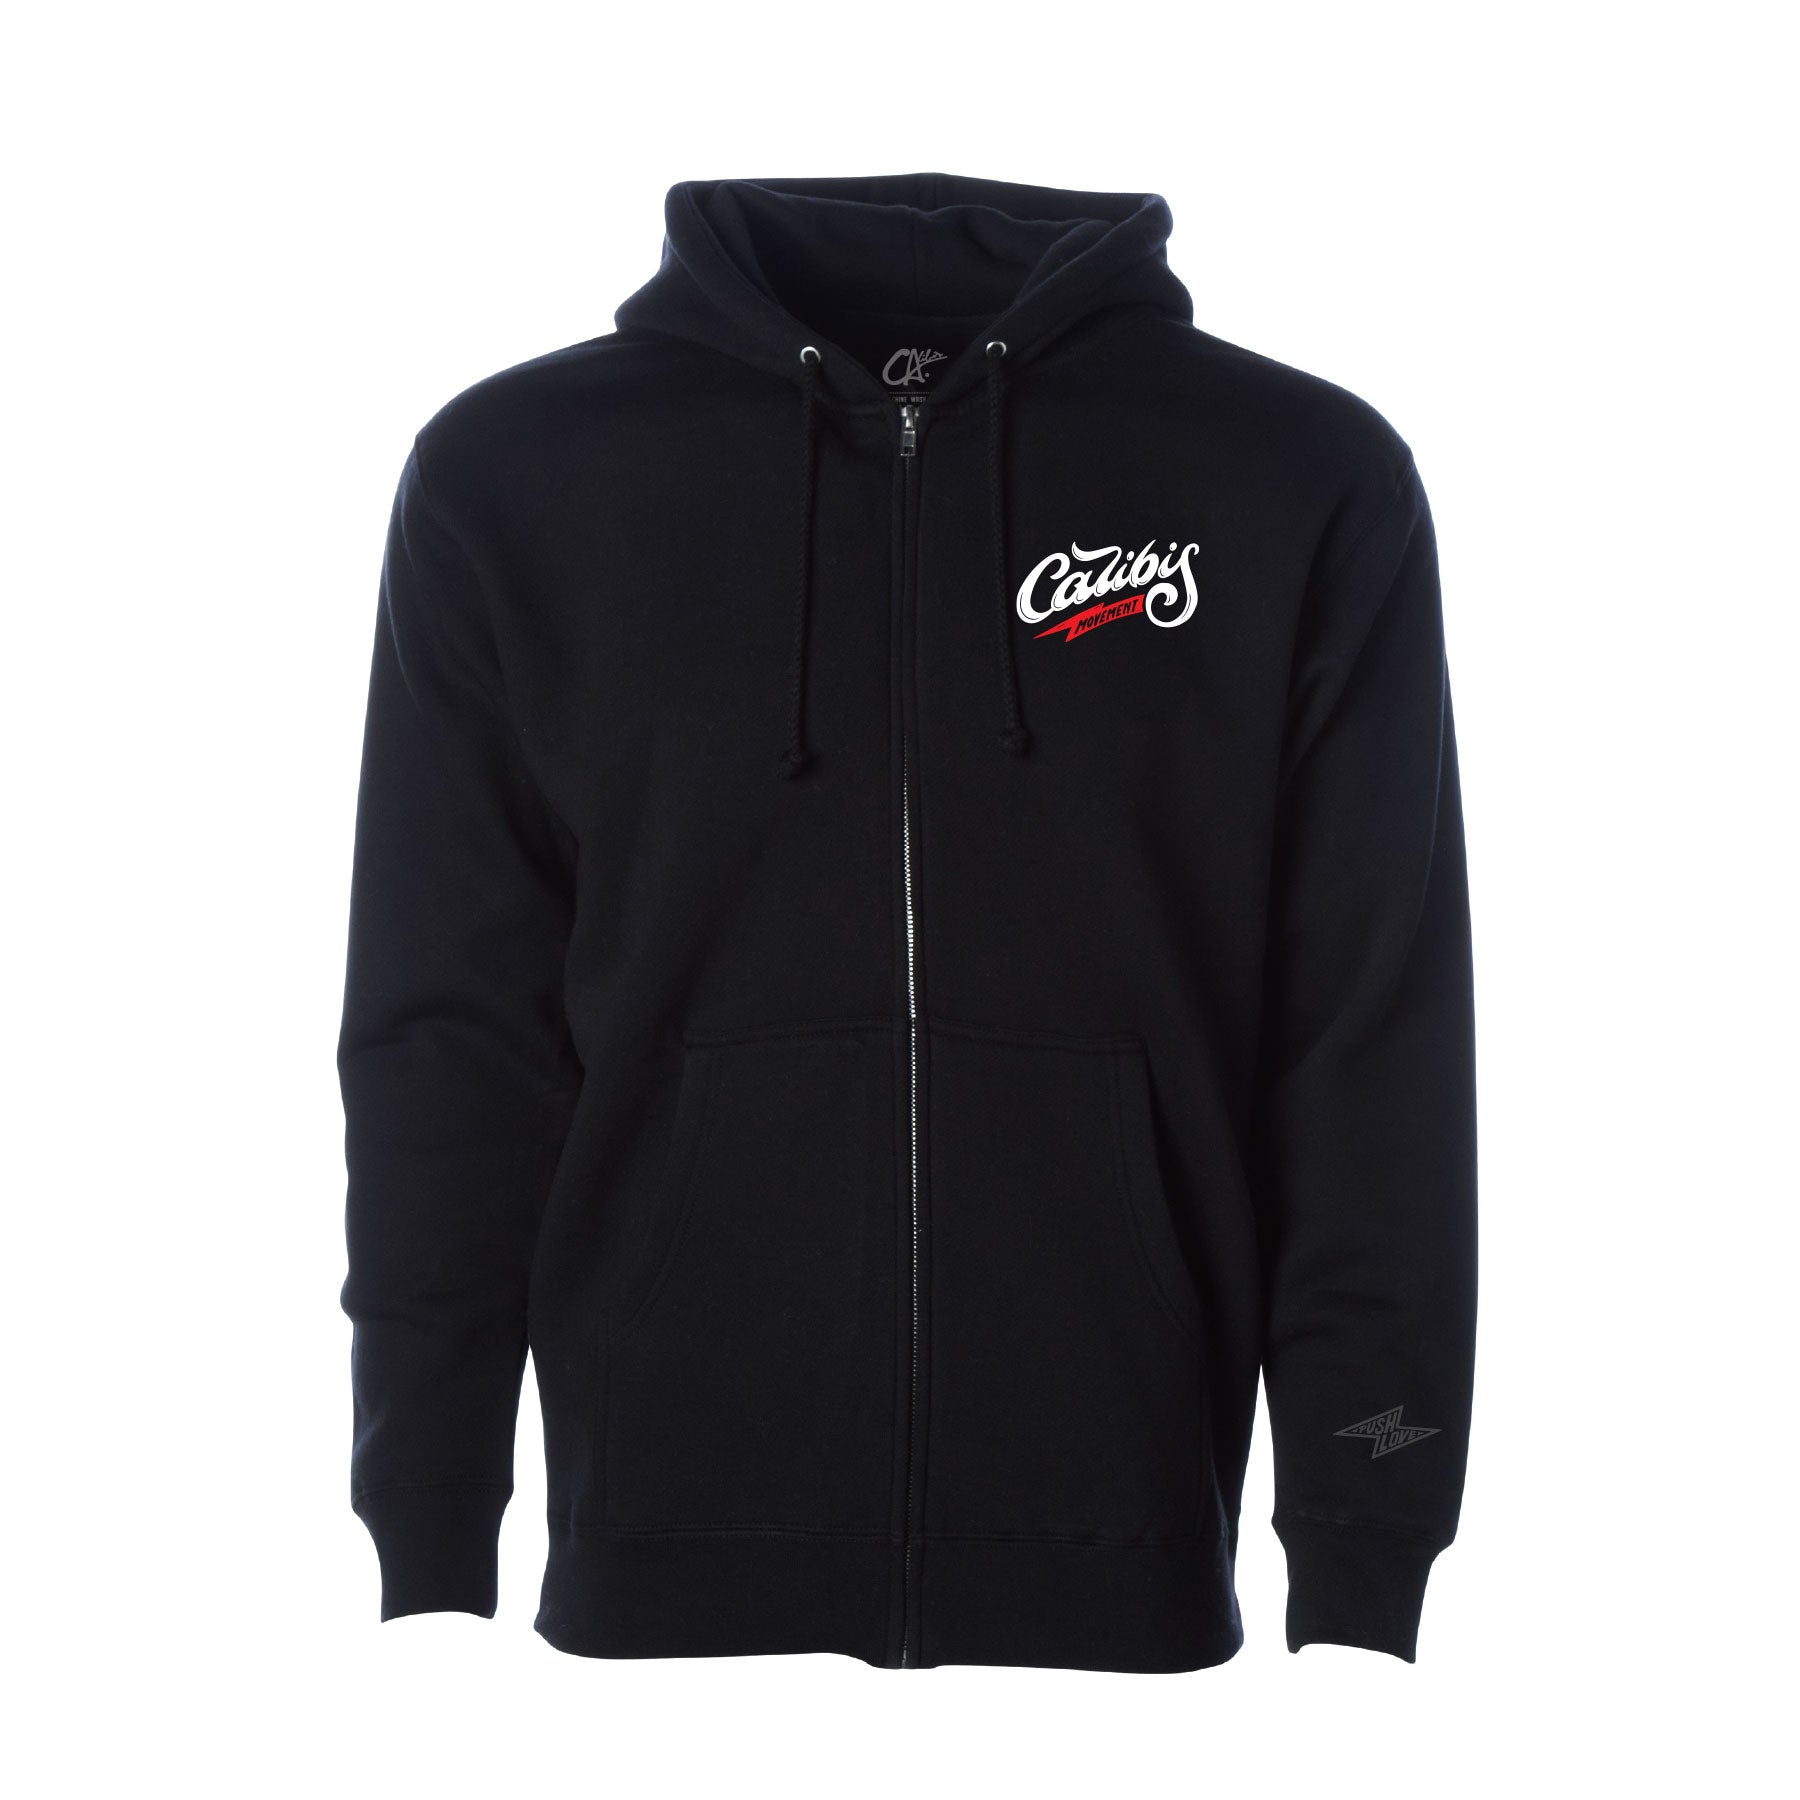 The Movement Zip Hoodie by Calibis Clothing